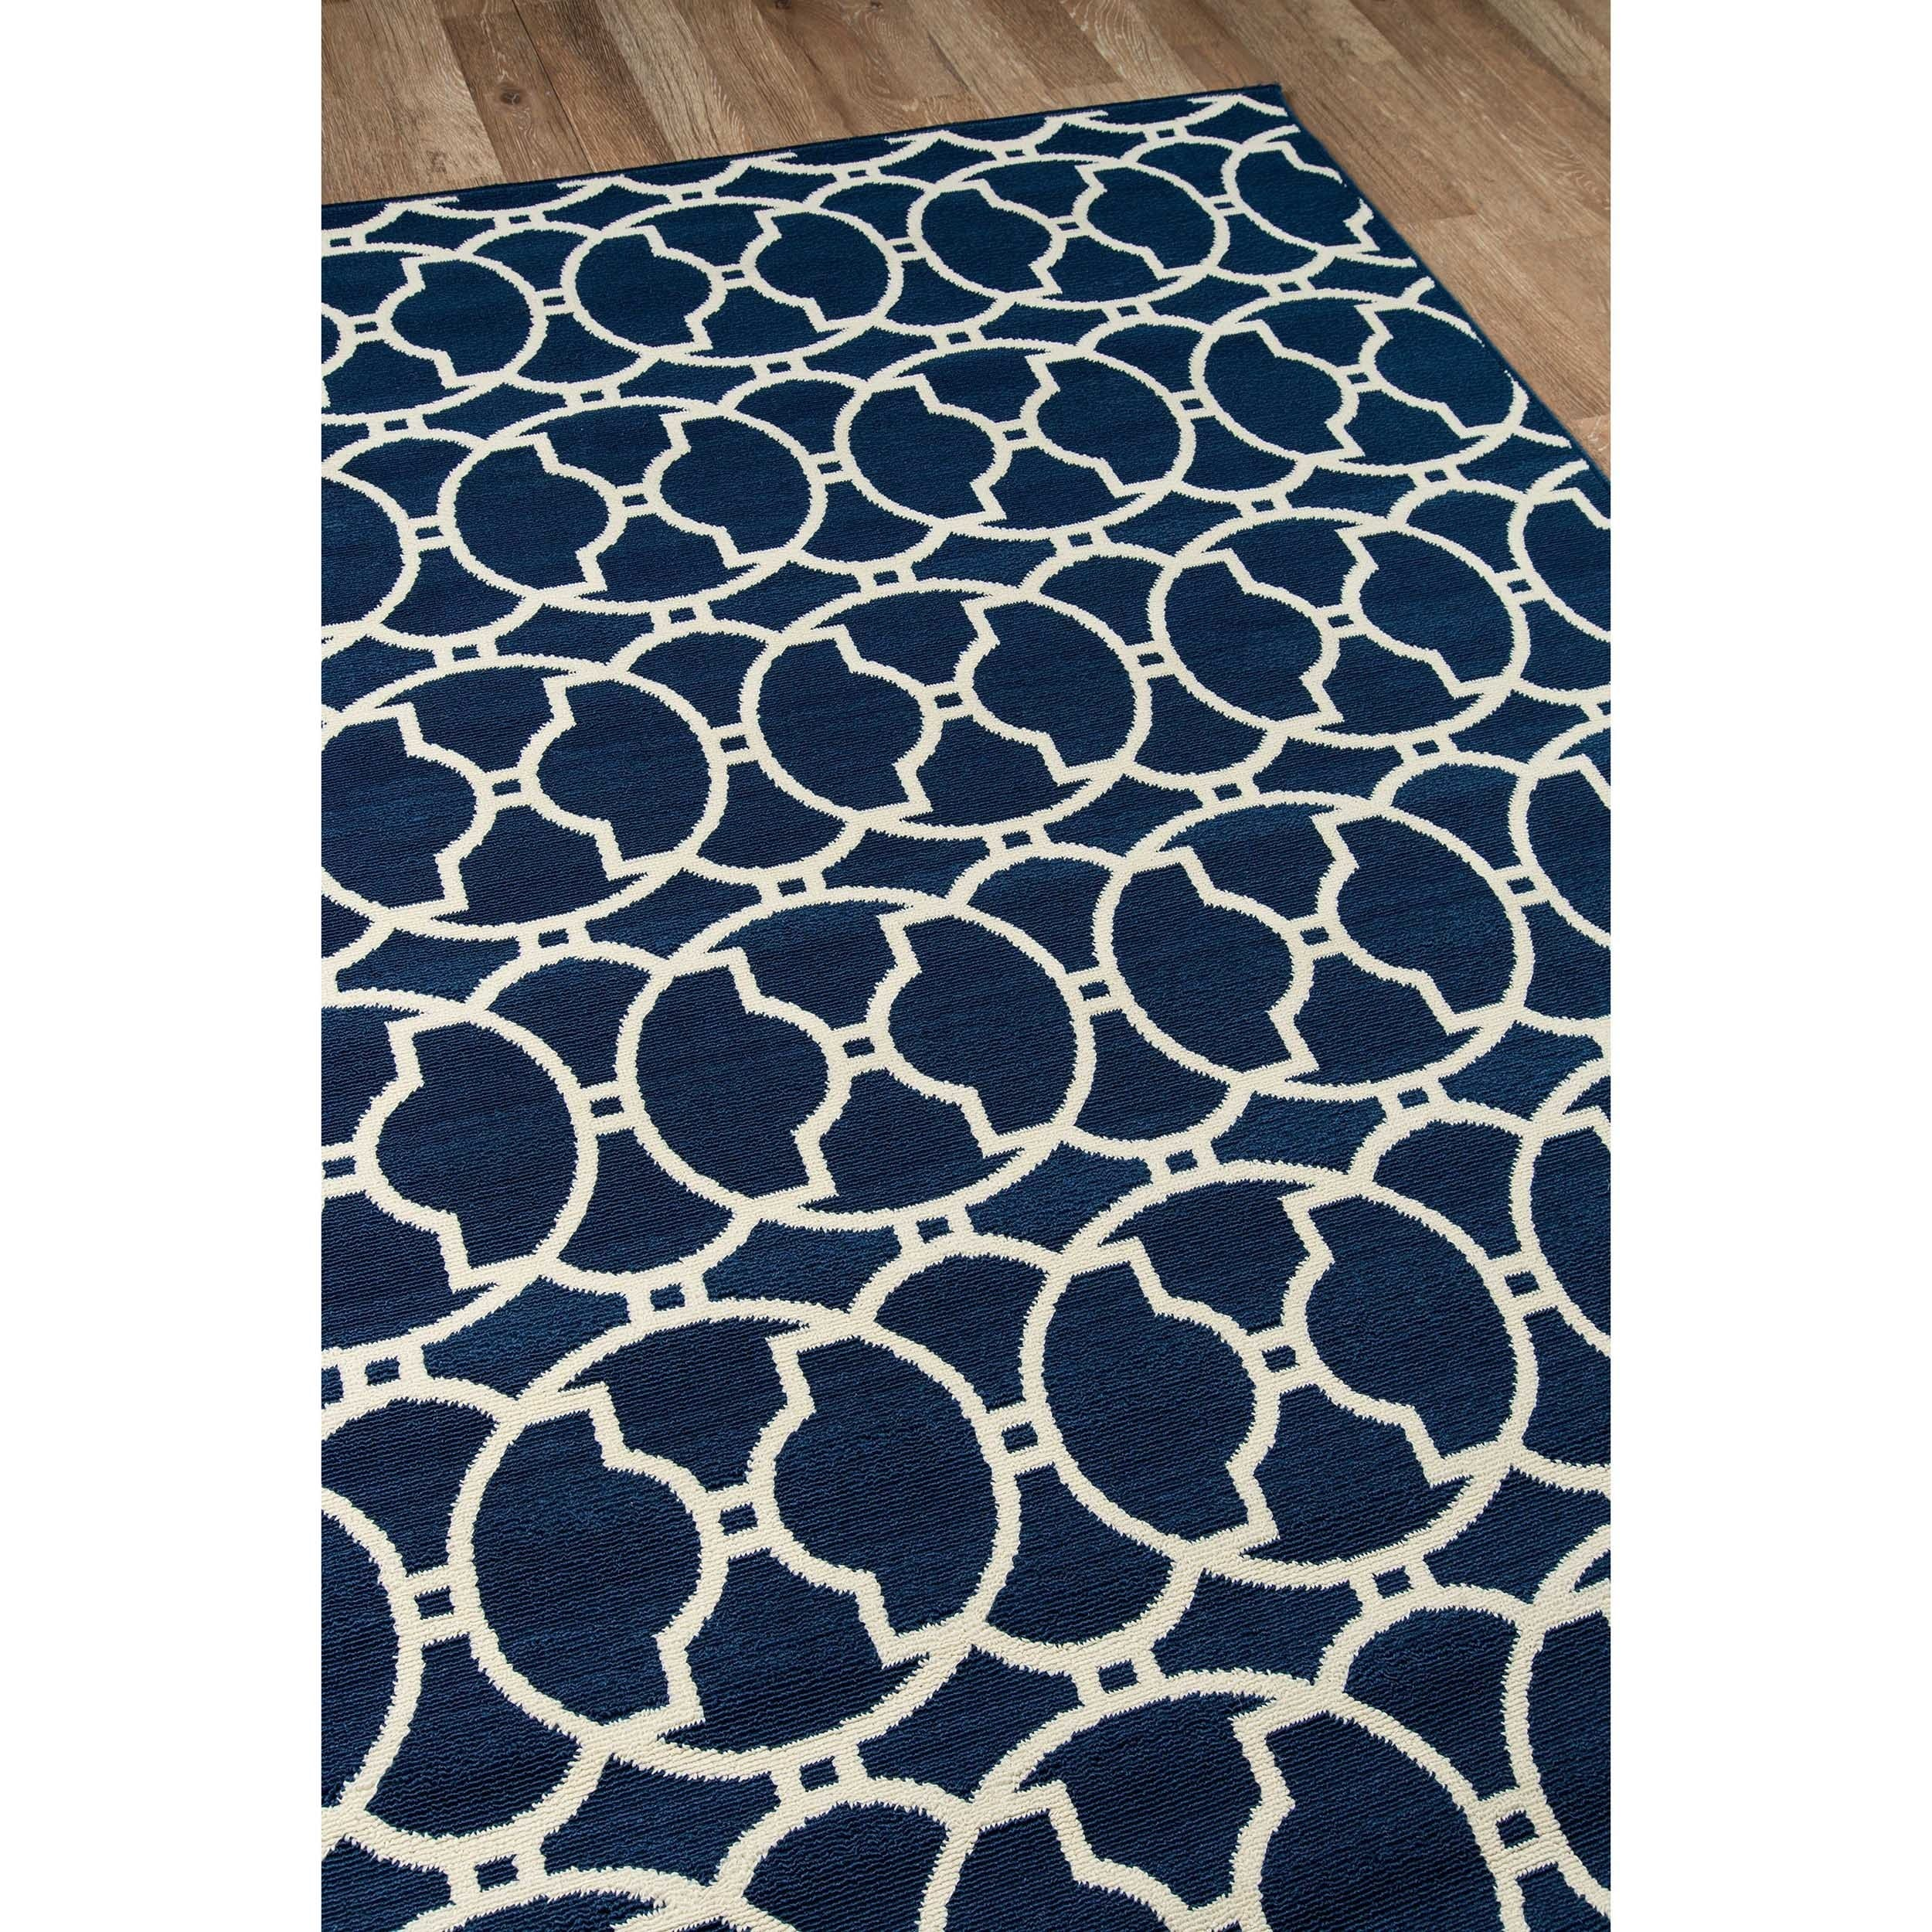 Momeni Baja Moroccan Tile Navy Indoor Outdoor Area Rug 7 10 x 10